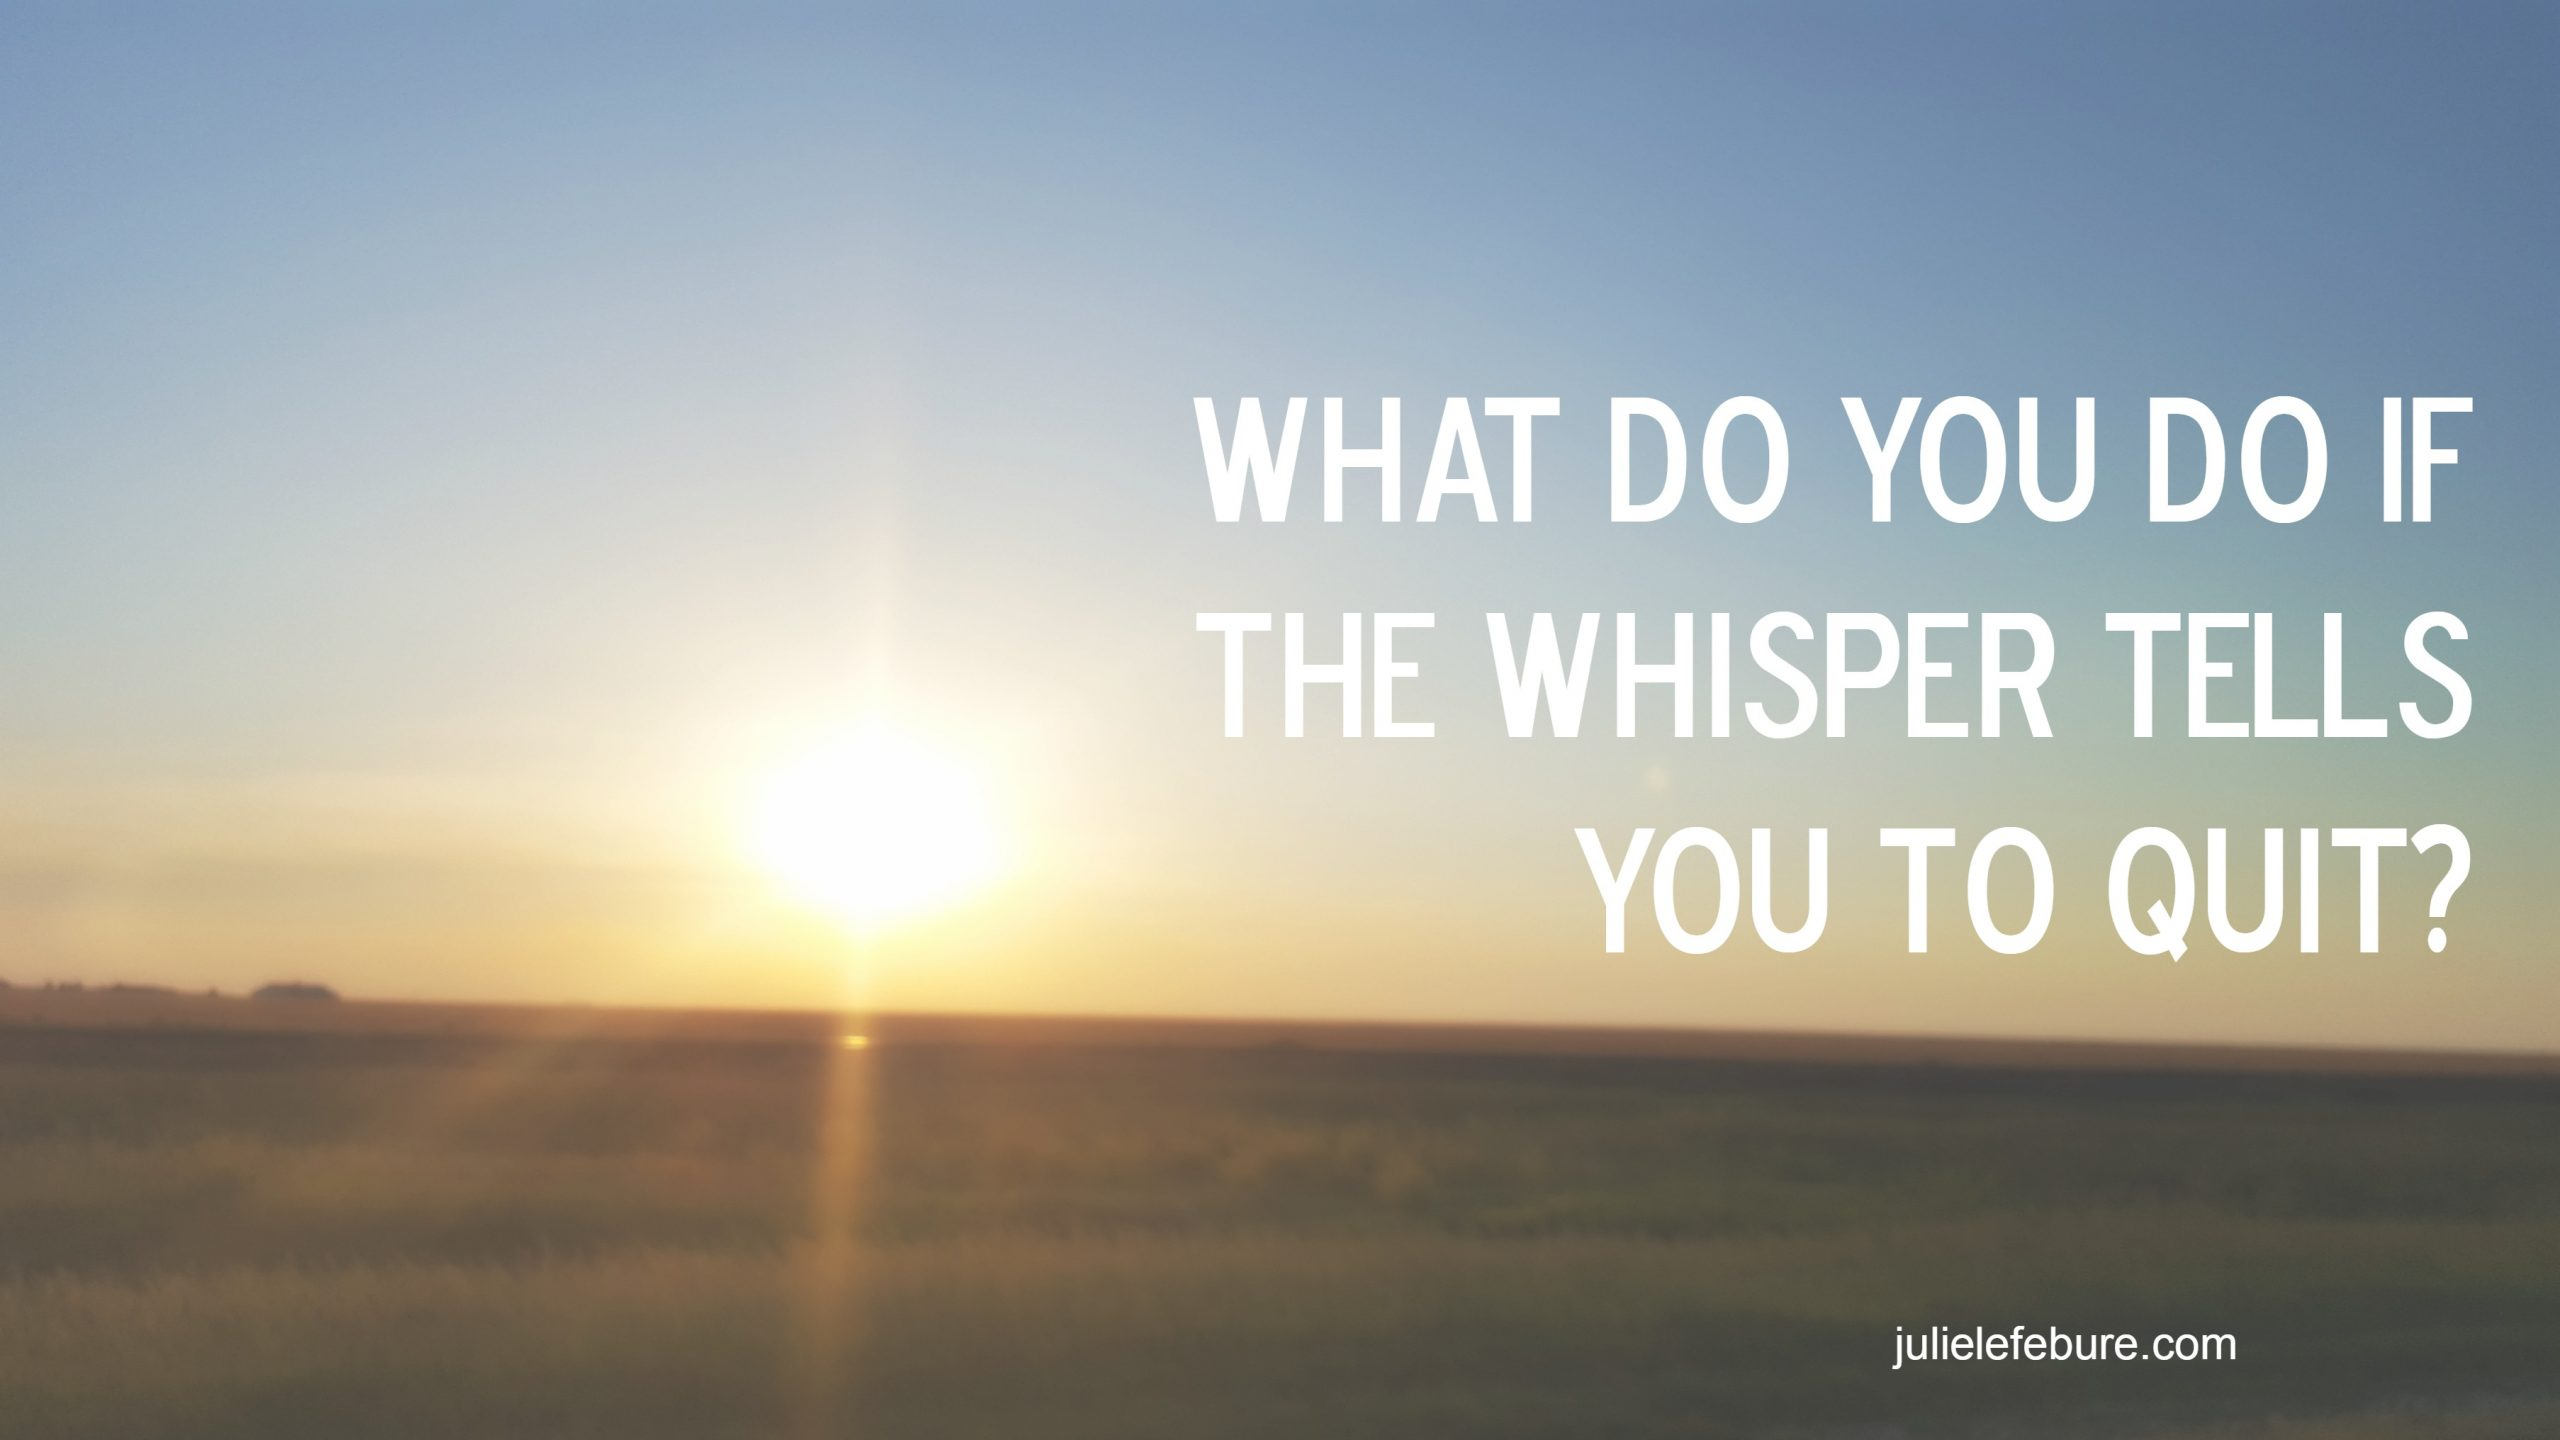 What Do You Do If The Whisper Tells You To Quit?